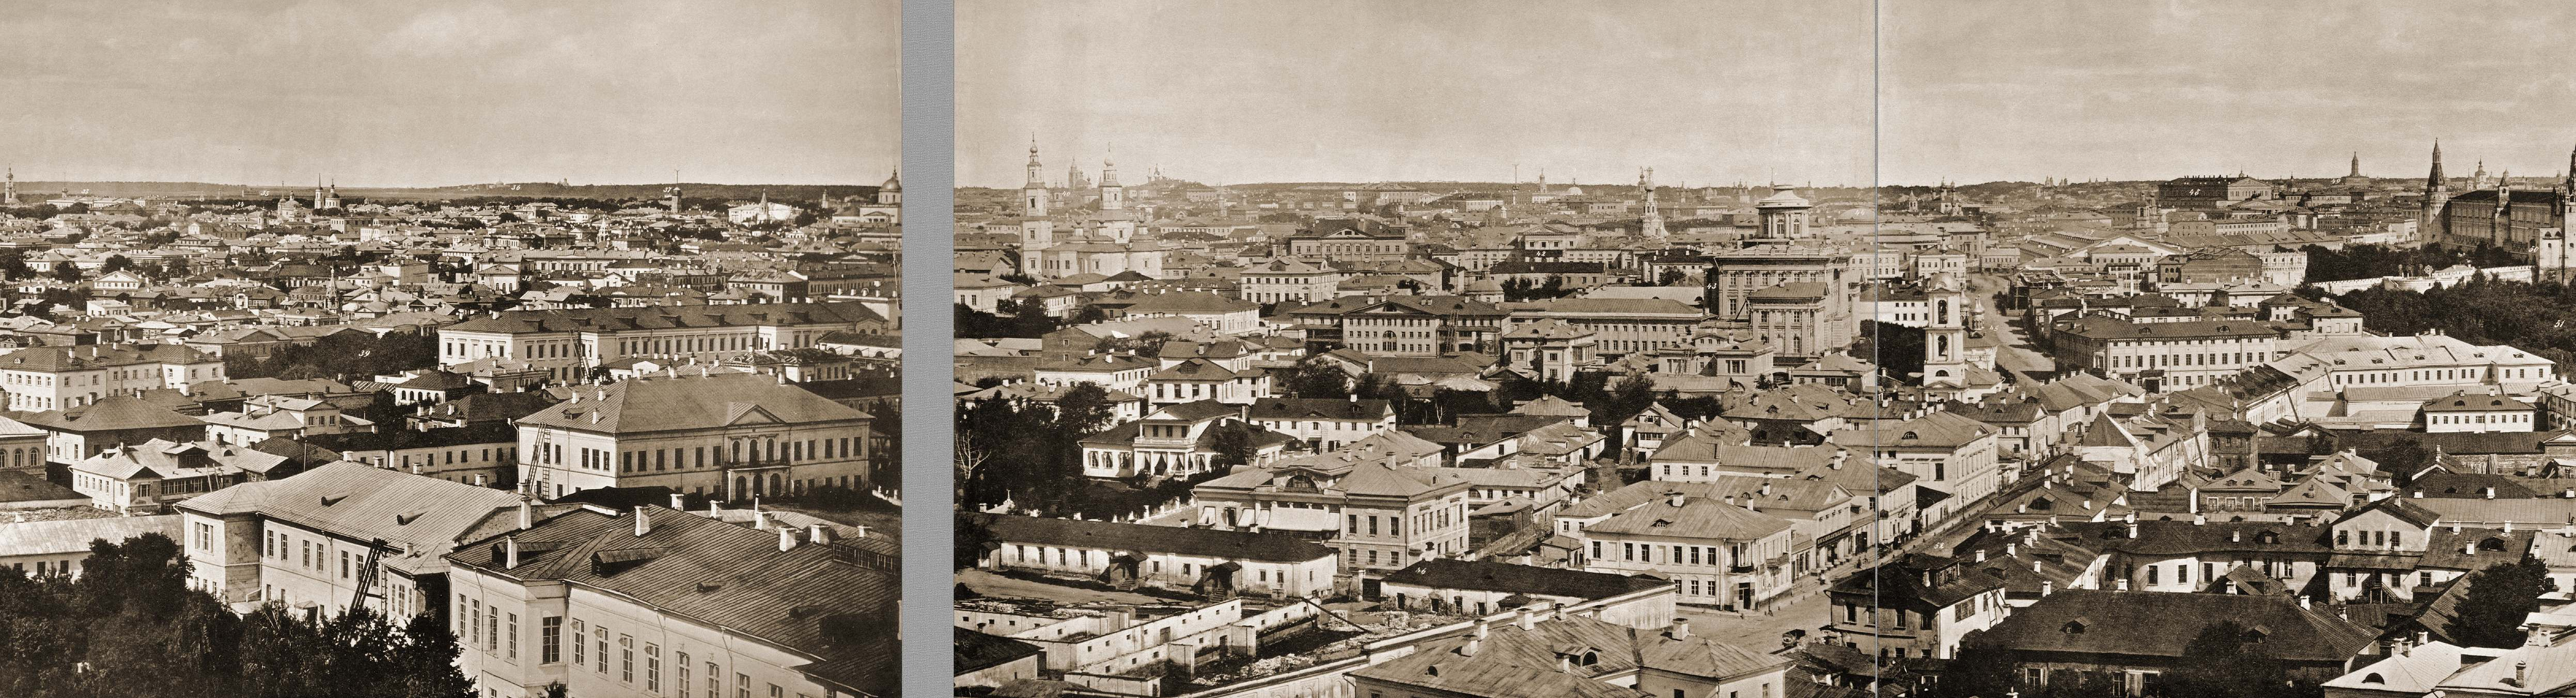 1867_moscow_russia_abandoned_3.jpg